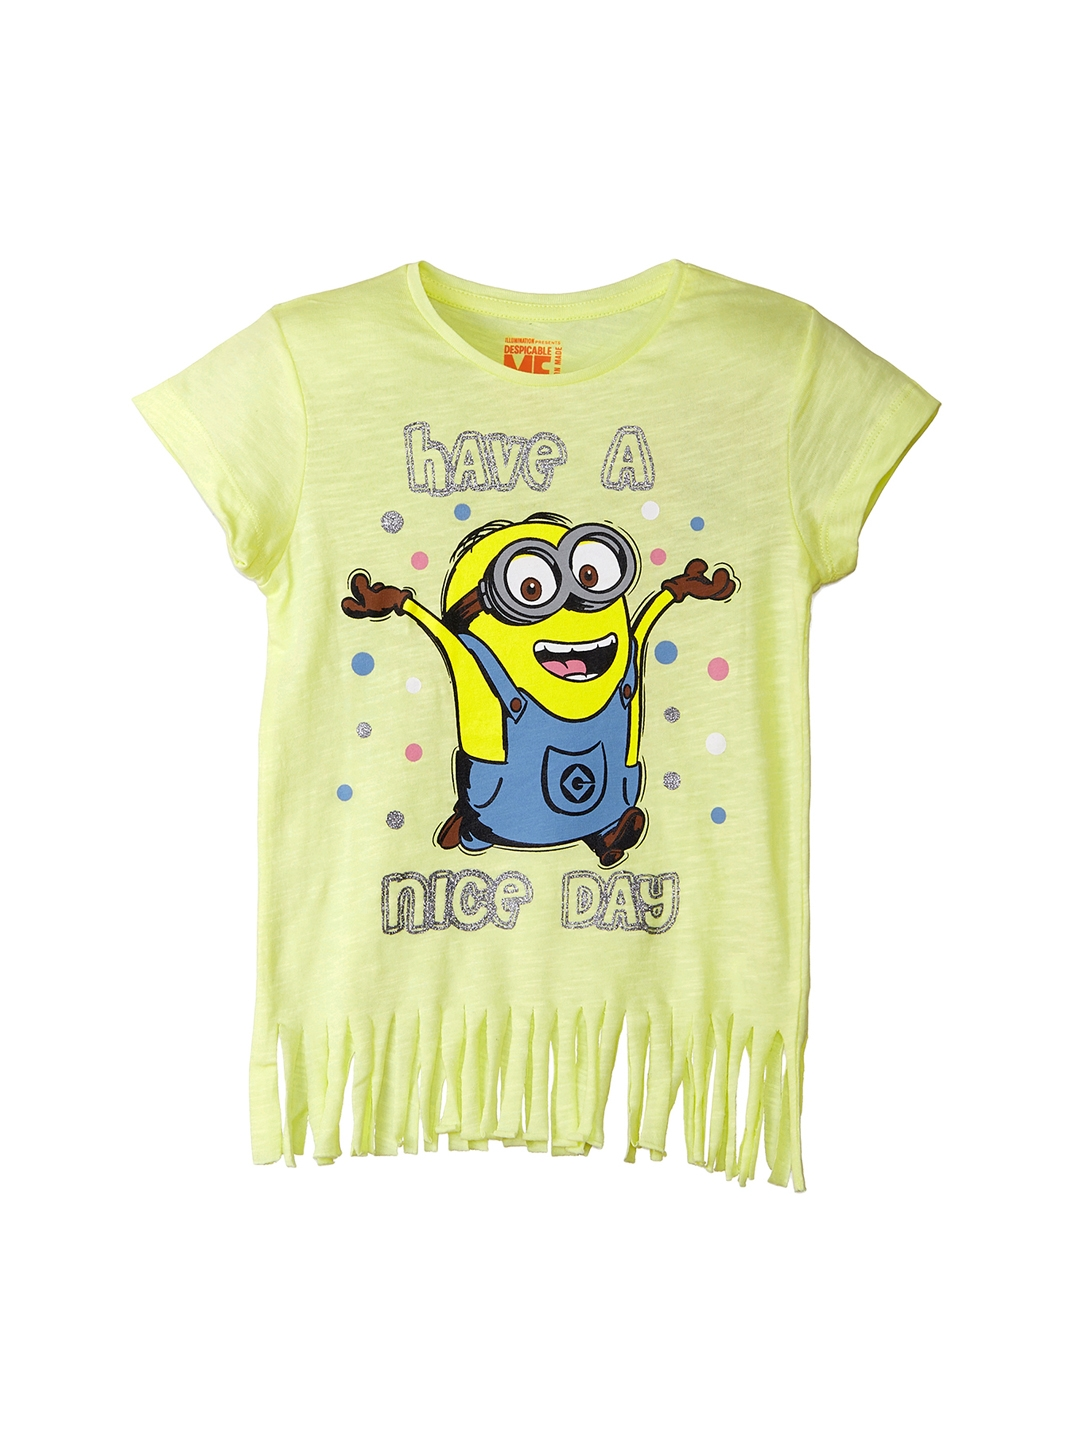 Shirts Minion collection for kids catalog photo